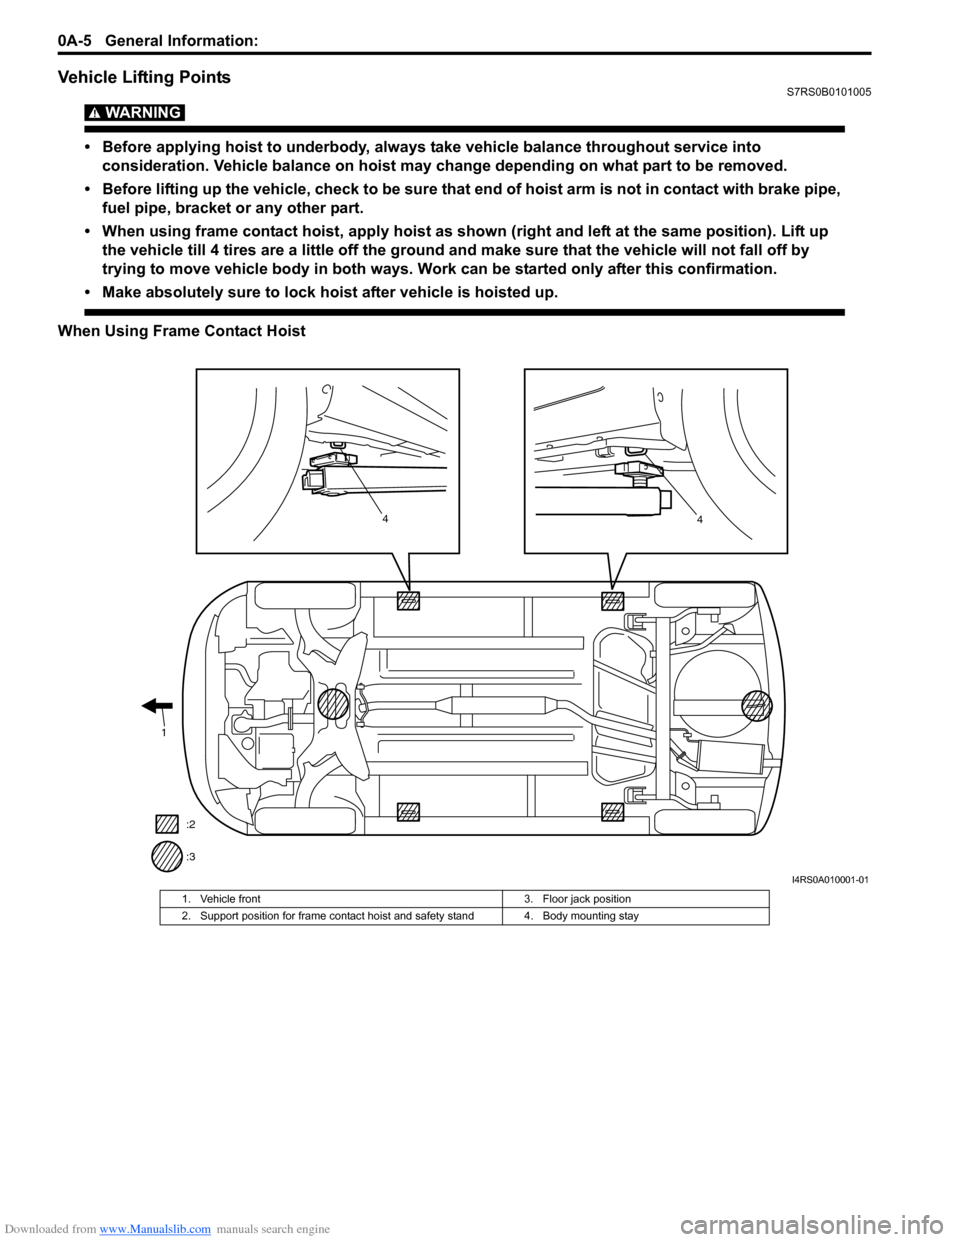 SUZUKI SWIFT 2008 2.G Service Workshop Manual Downloaded from www.Manualslib.com manuals search engine 0A-5 General Information:  Vehicle Lifting PointsS7RS0B0101005 WARNING!  • Before applying hoist to underbody, always take vehicle balance th